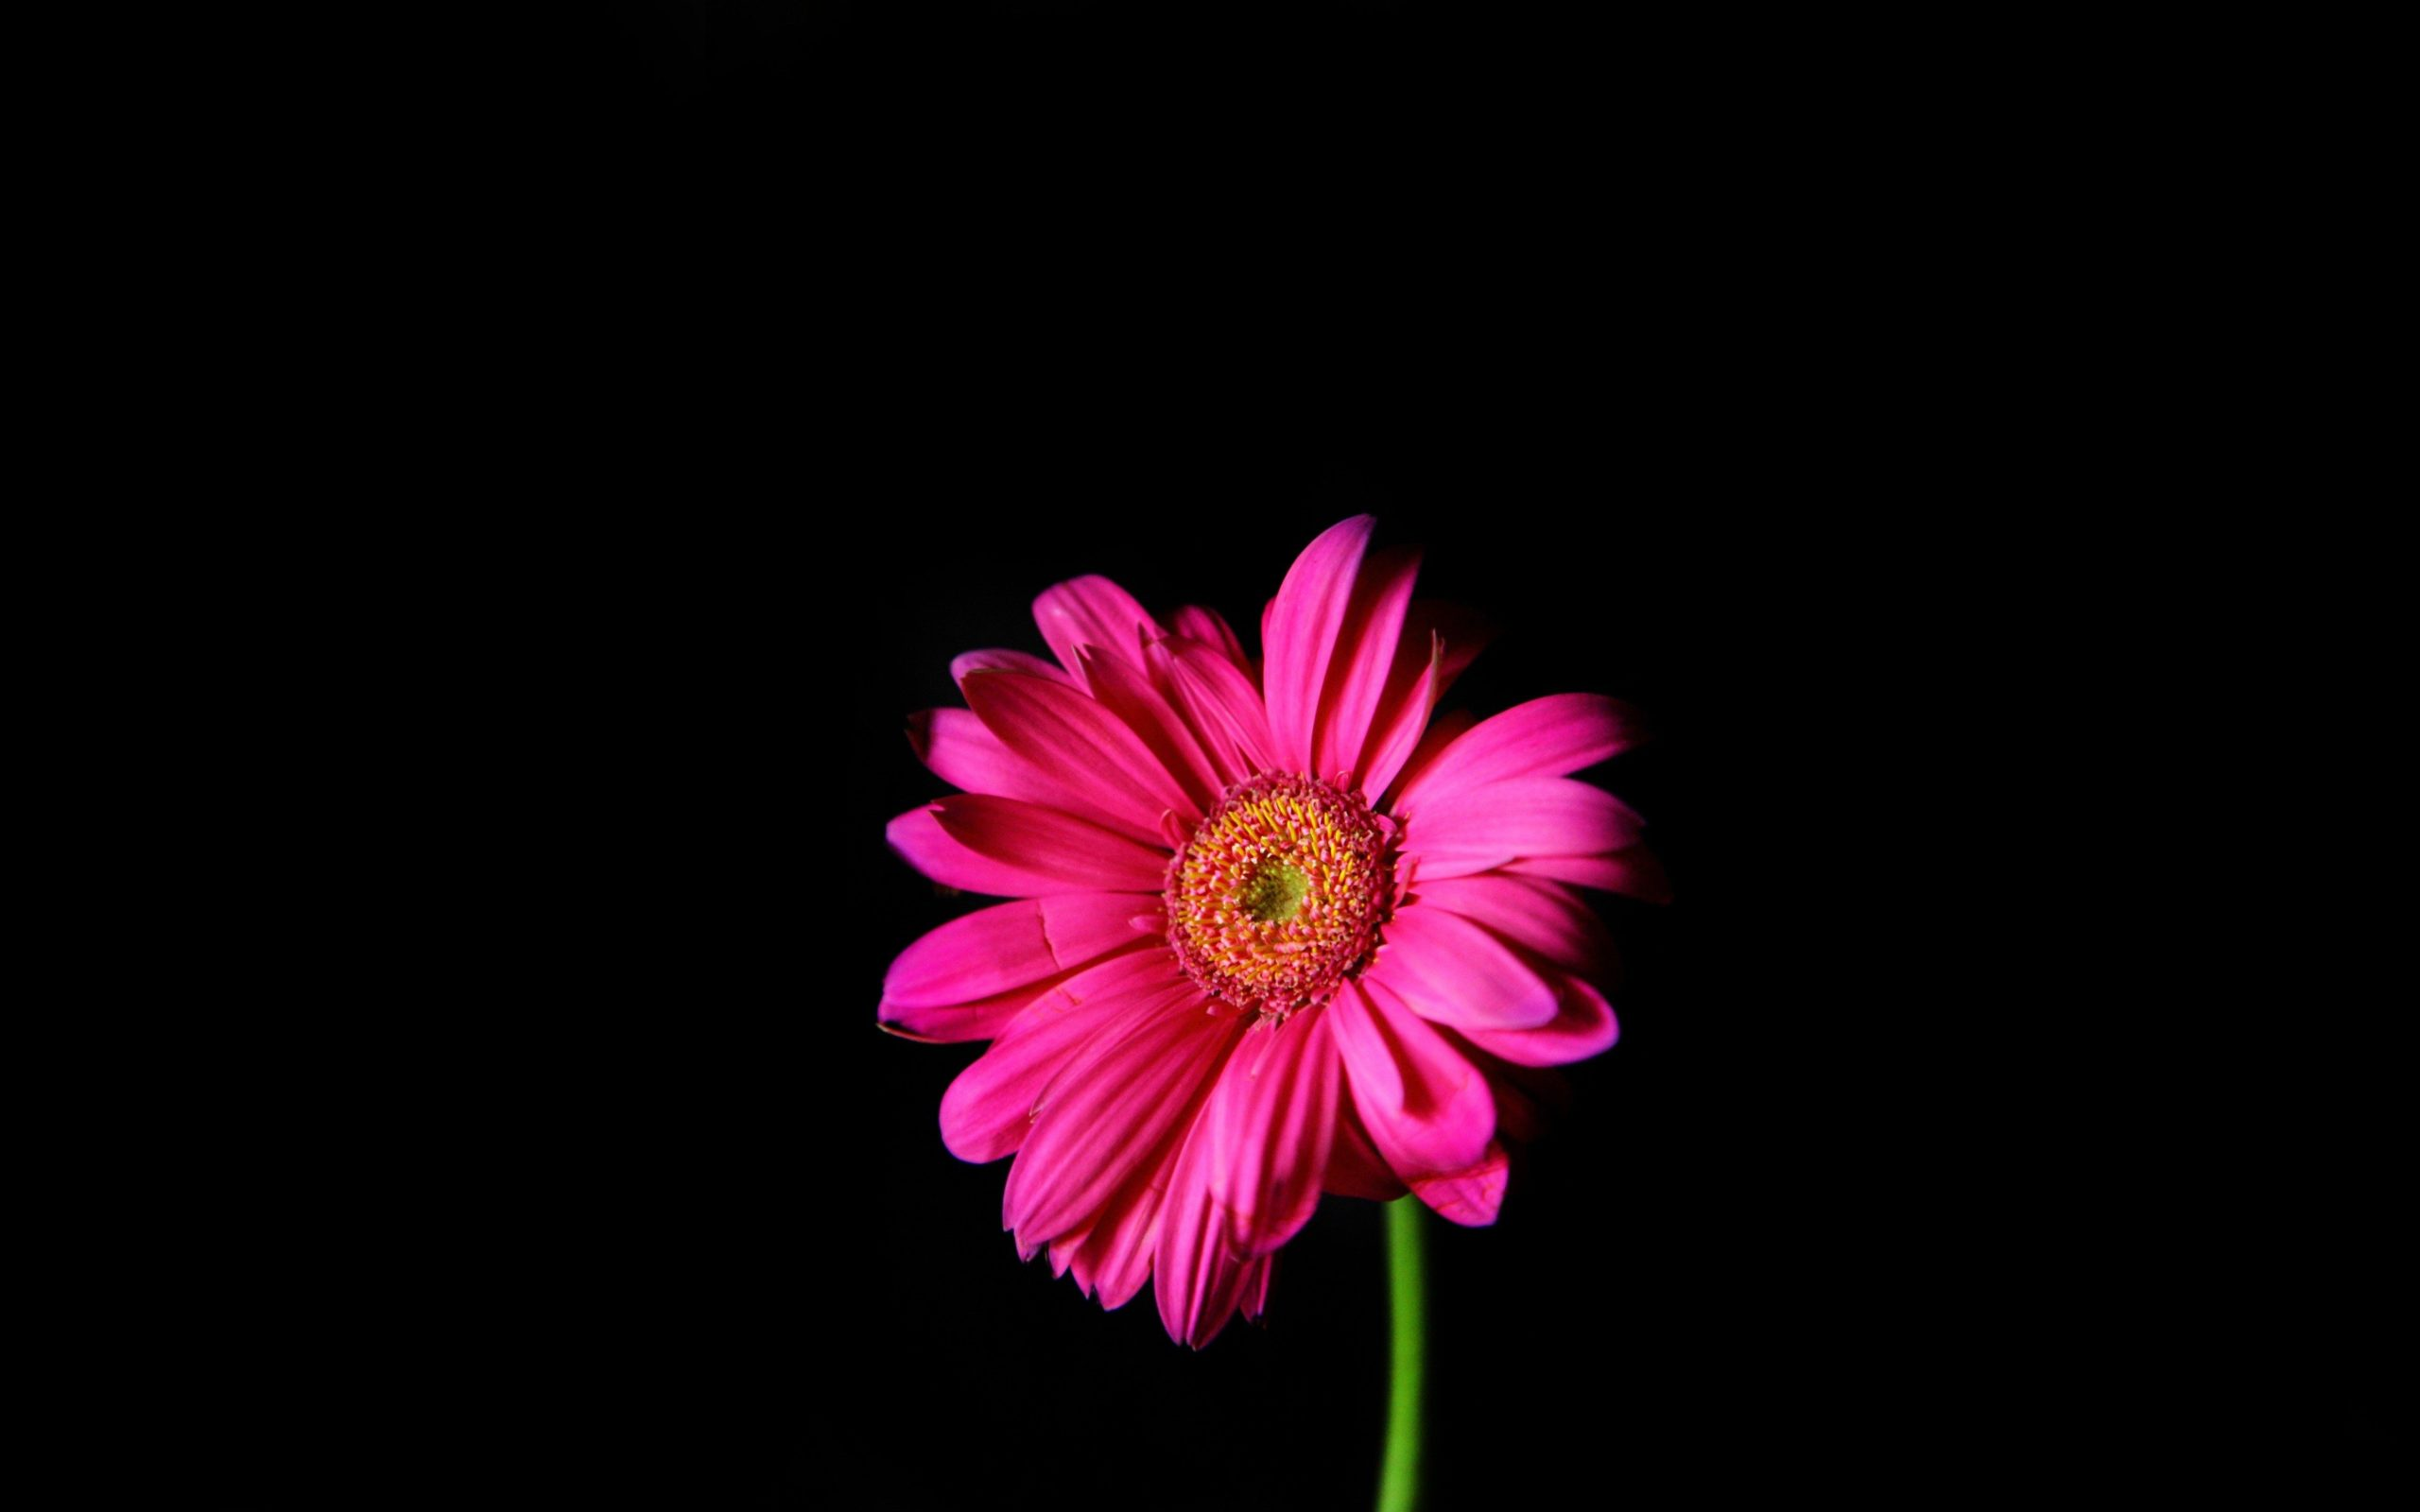 Flowers Pink Daisy Black Background